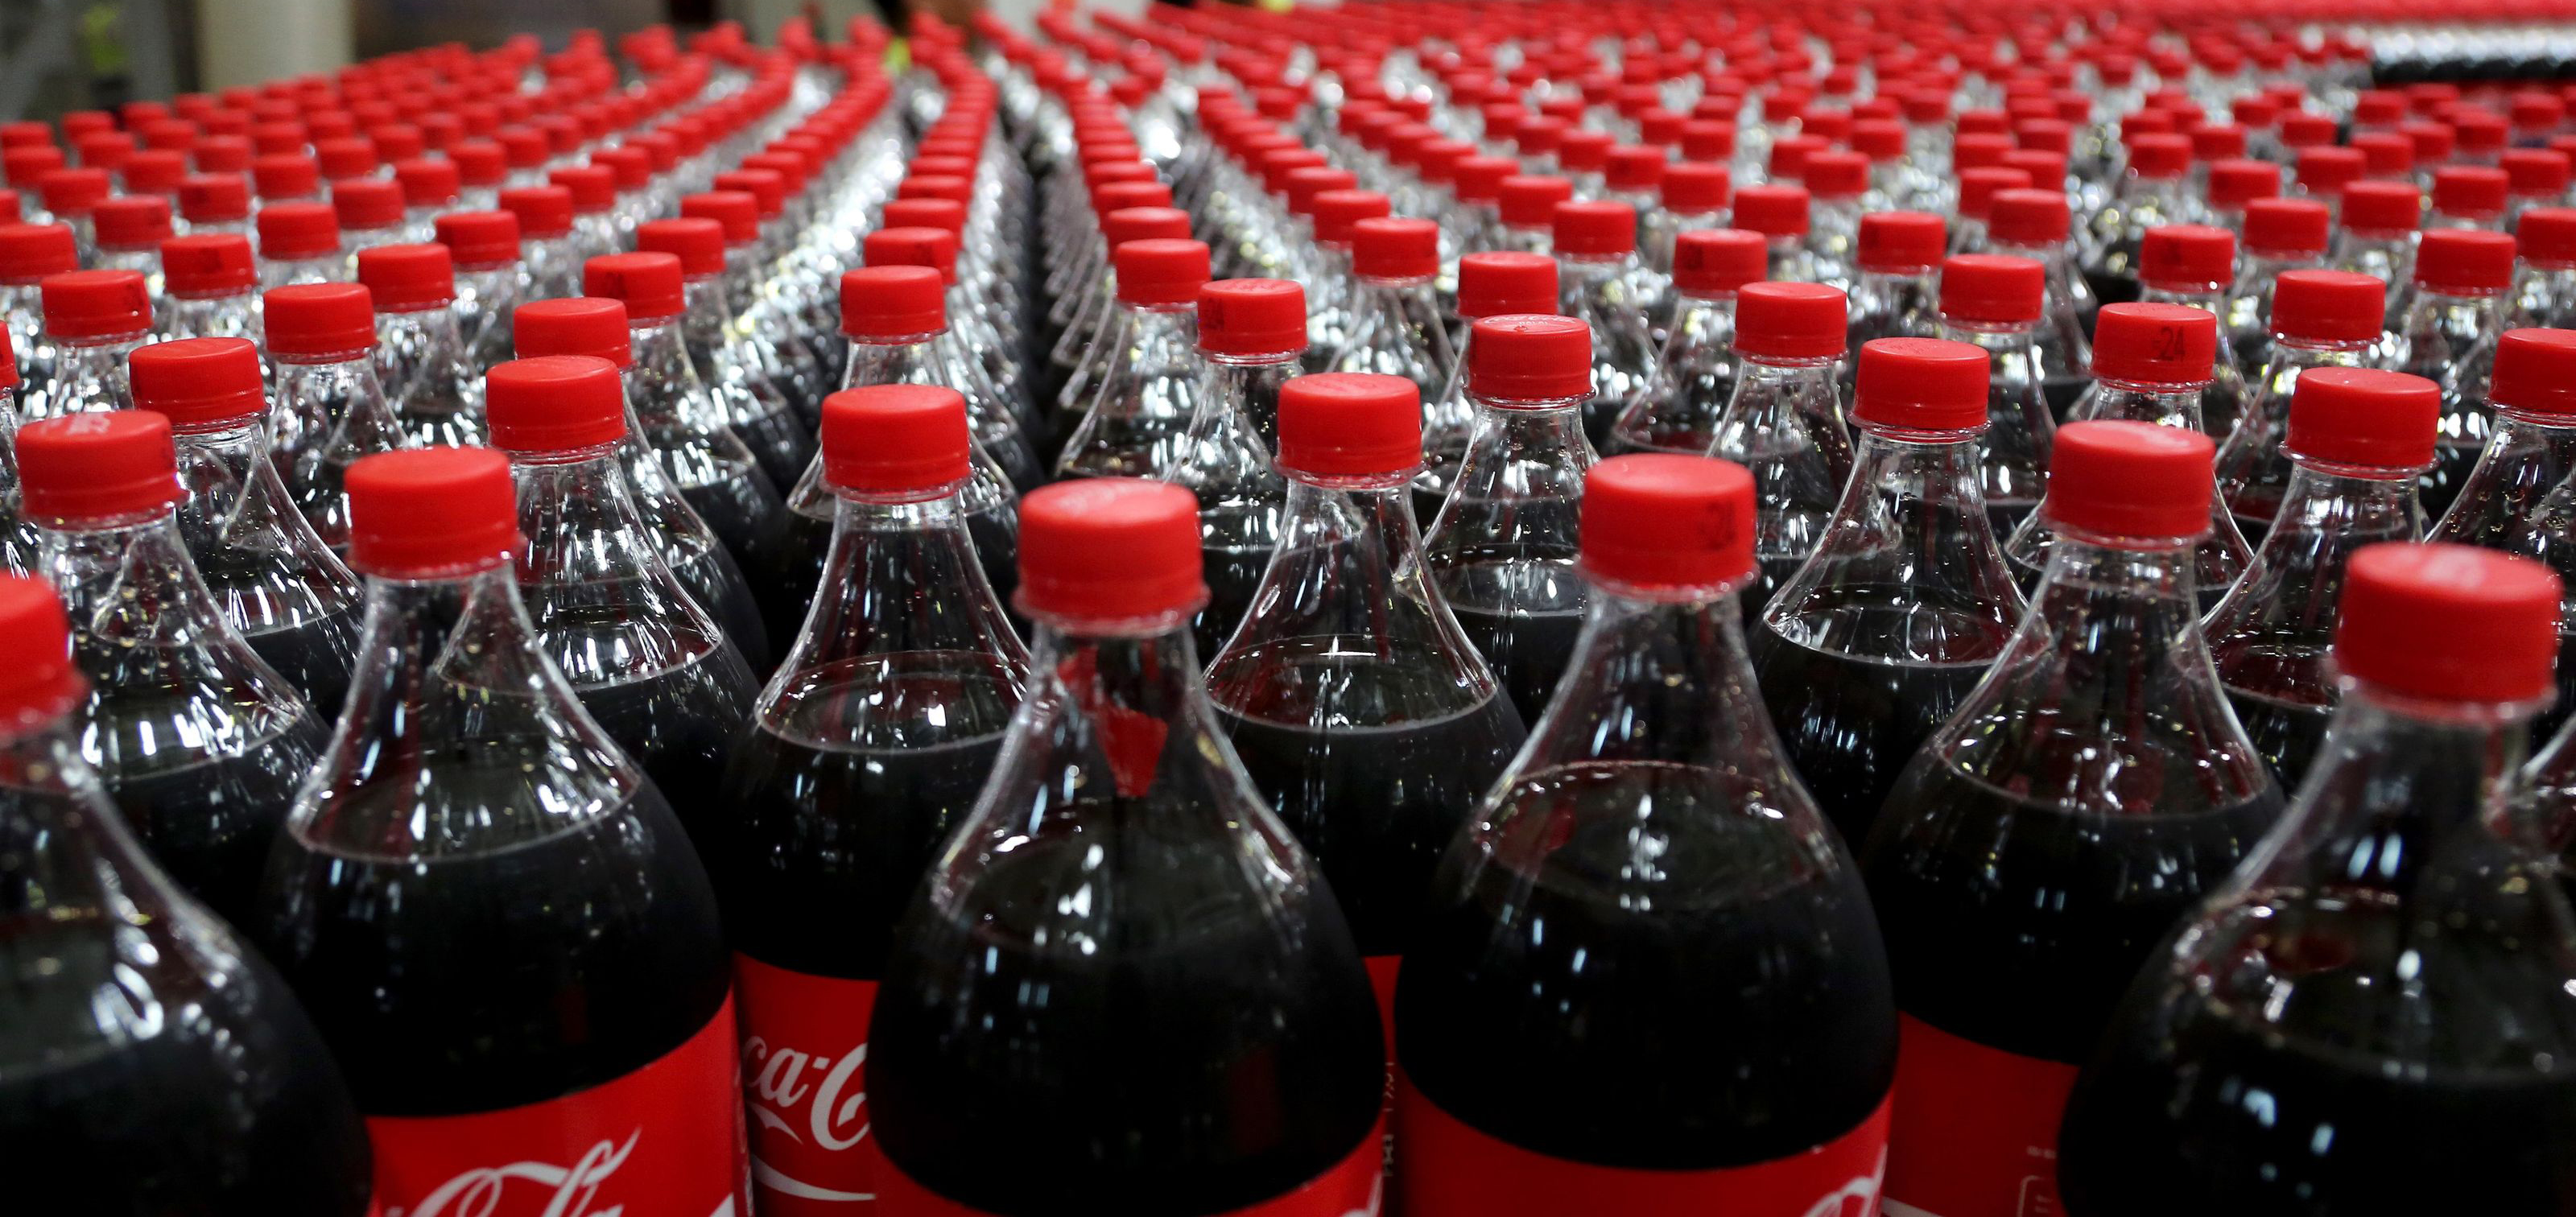 Perfect My Coke Rewards Sign Up Bonus National Product National Product Supply System Bottling Diet Coke Rewards Sign inspiration Coke Rewards Sign In